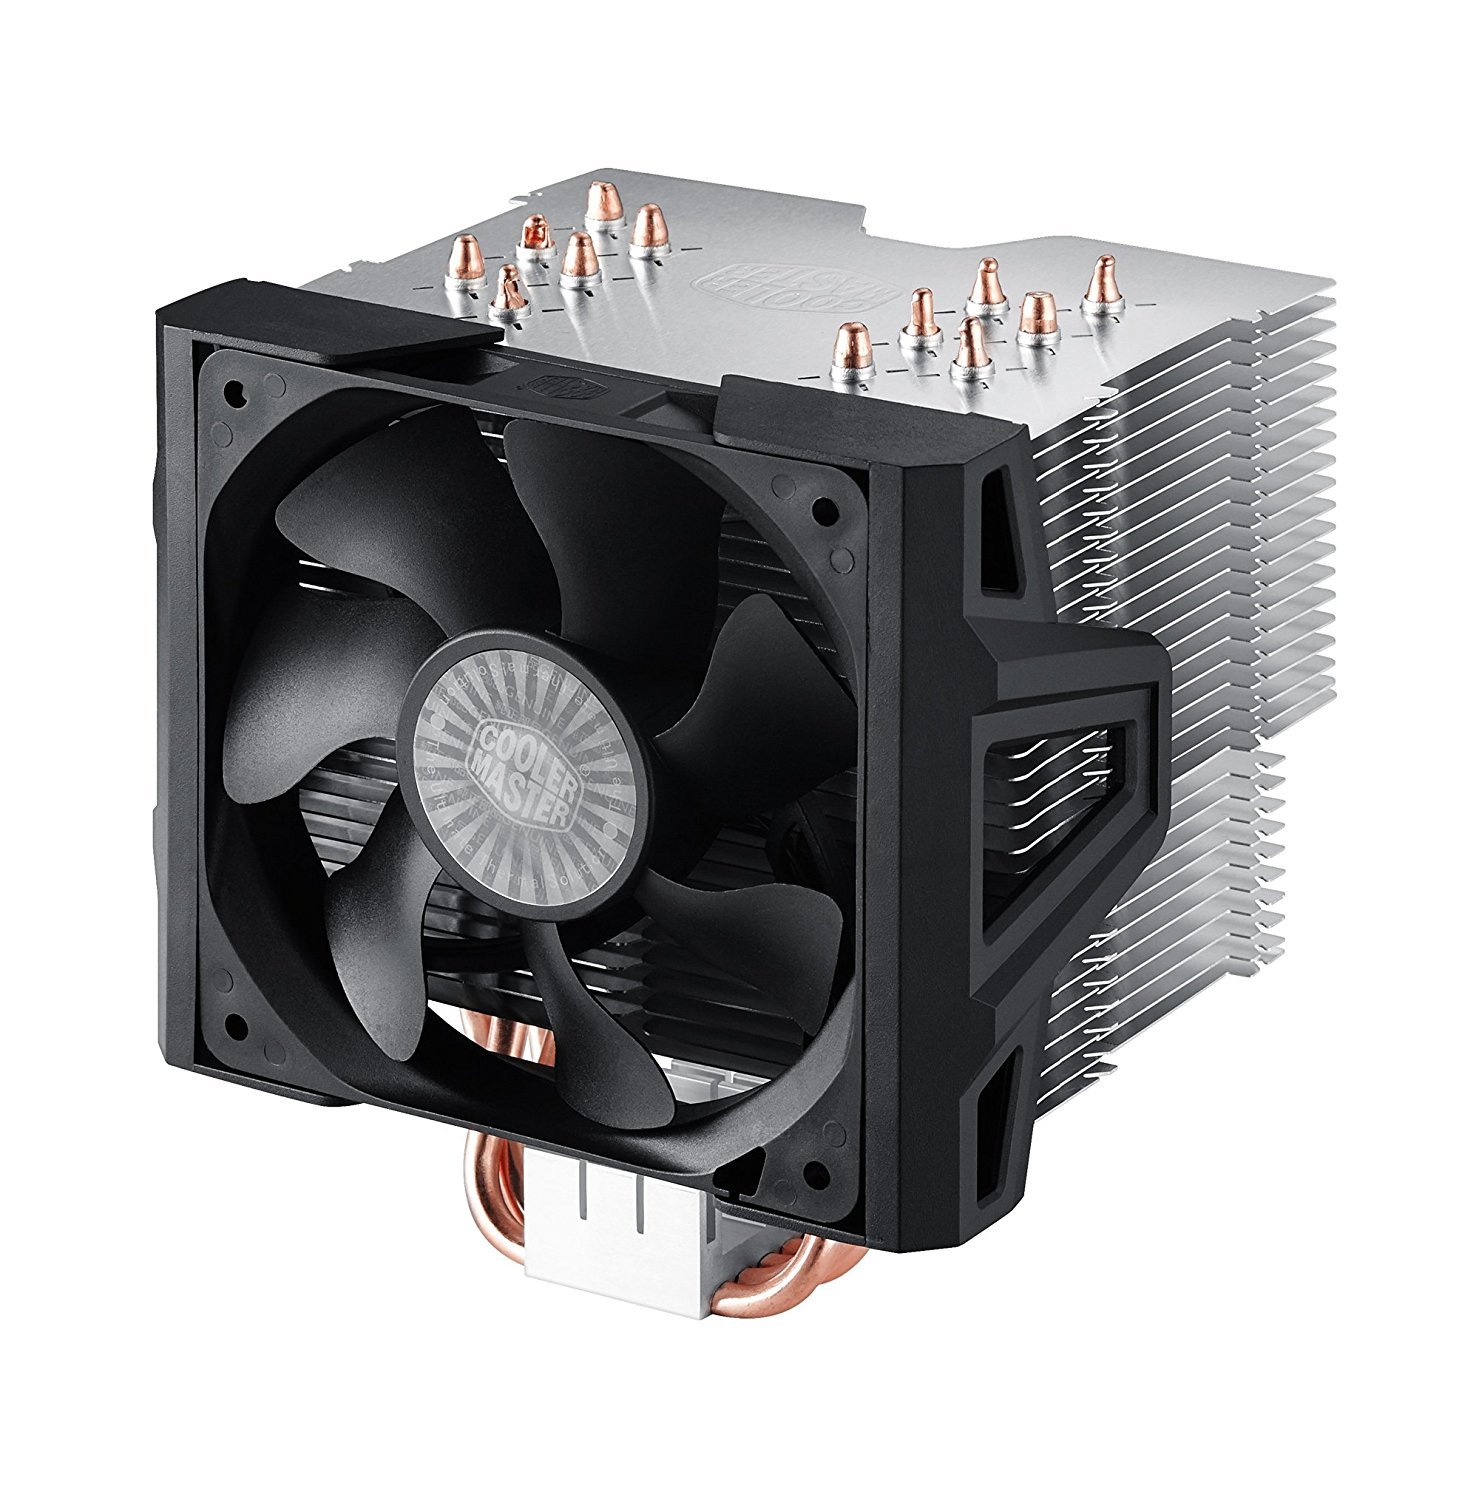 Cooler Master RR-H6V2-13PK-R1 Hyper 612 Ver.2 - Silent CPU Air Cooler with 6 Direct Contact Heatpipes and Folding Fin Structure